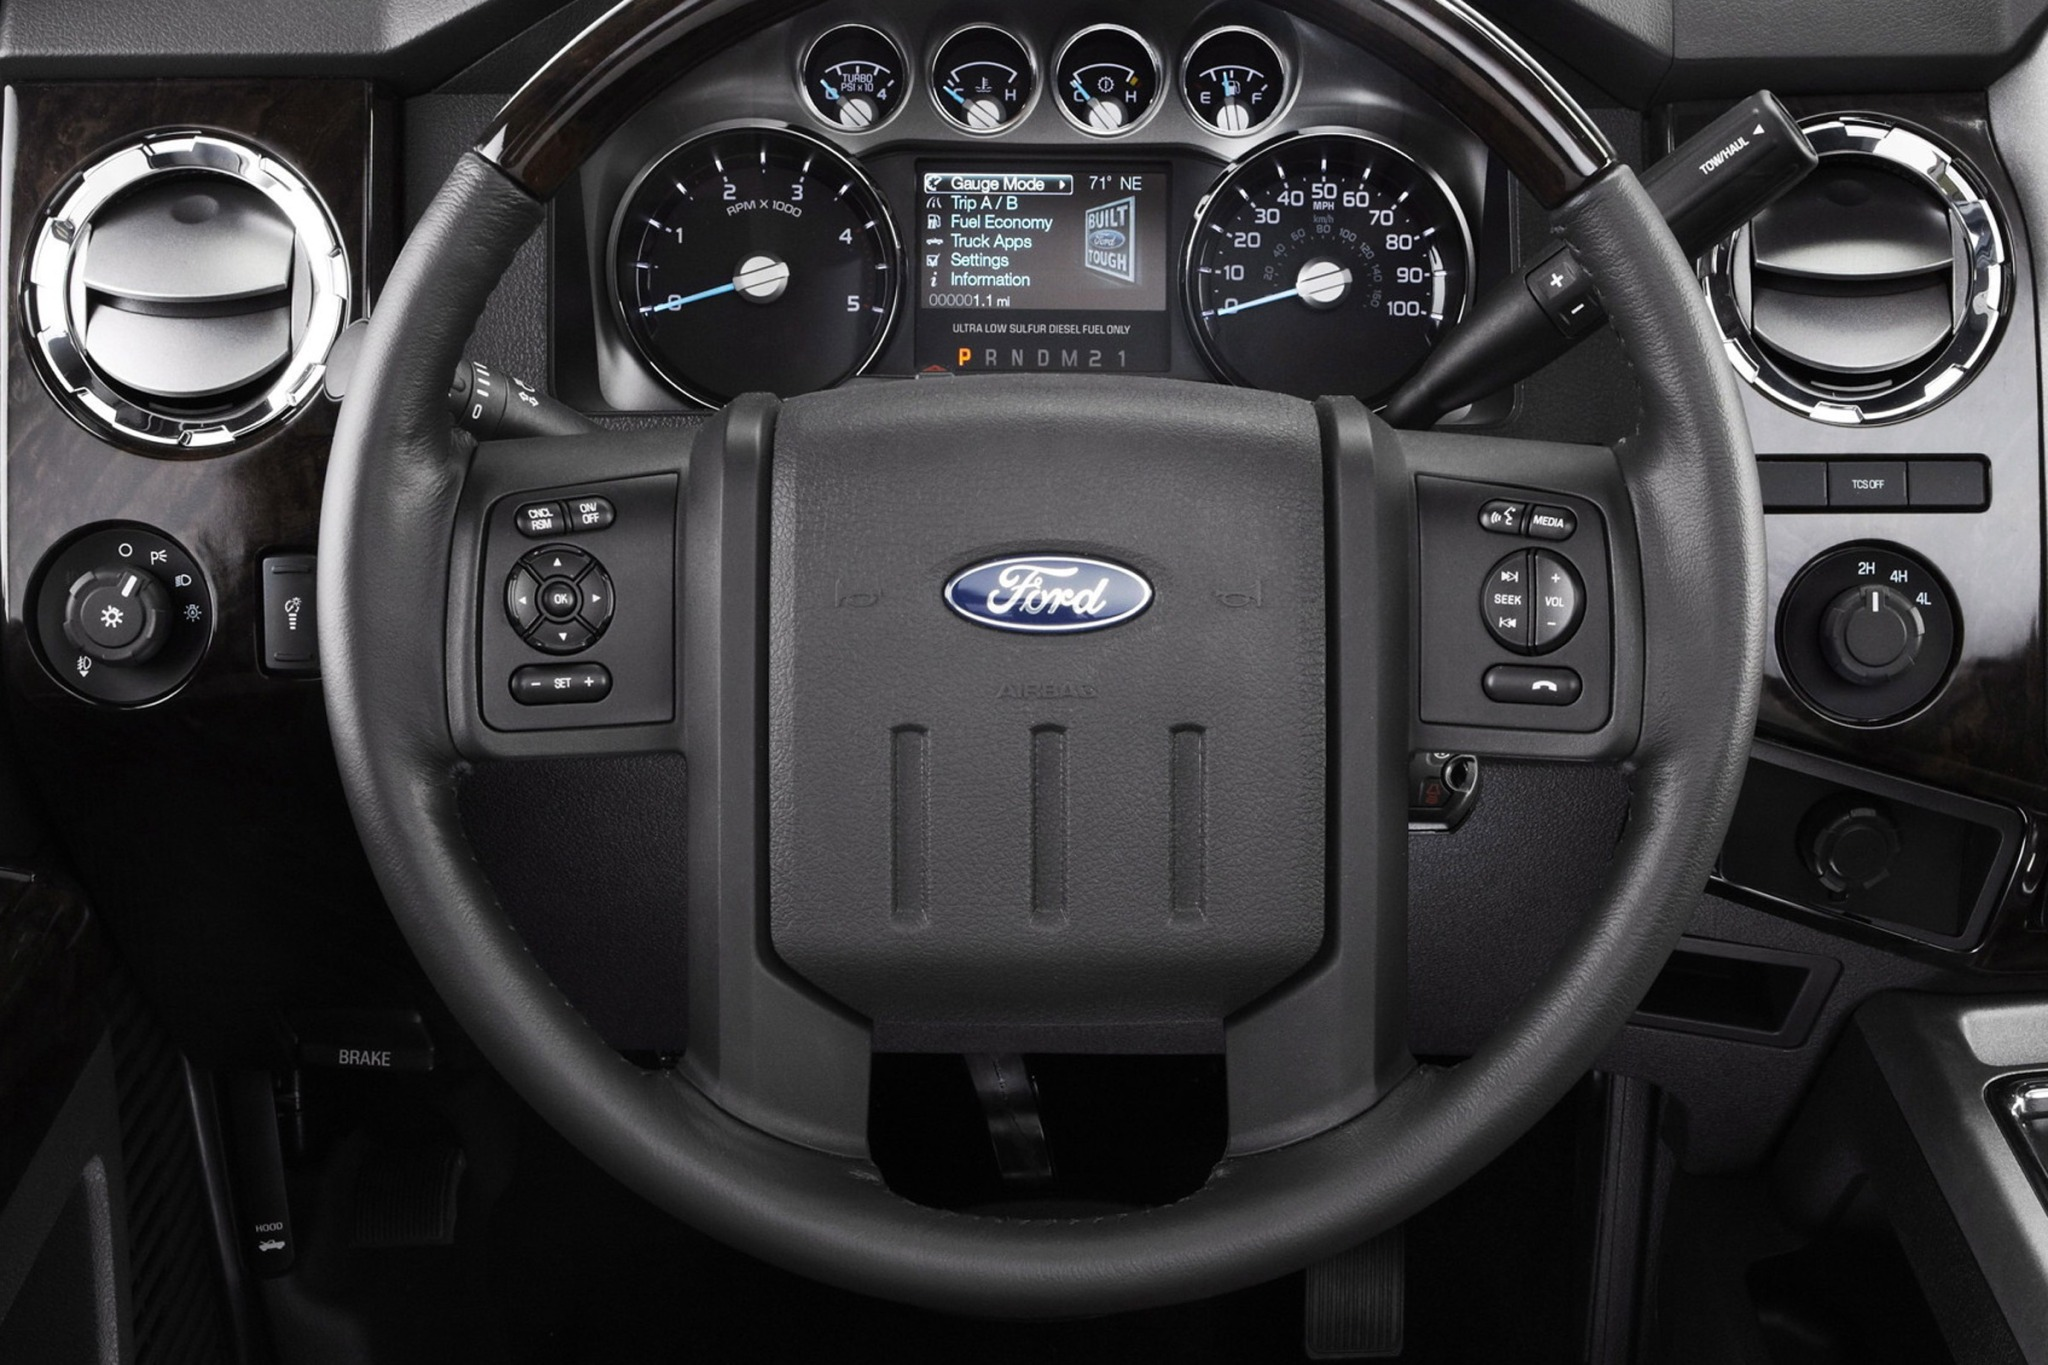 2013 Ford F-350 Super Dut interior #5